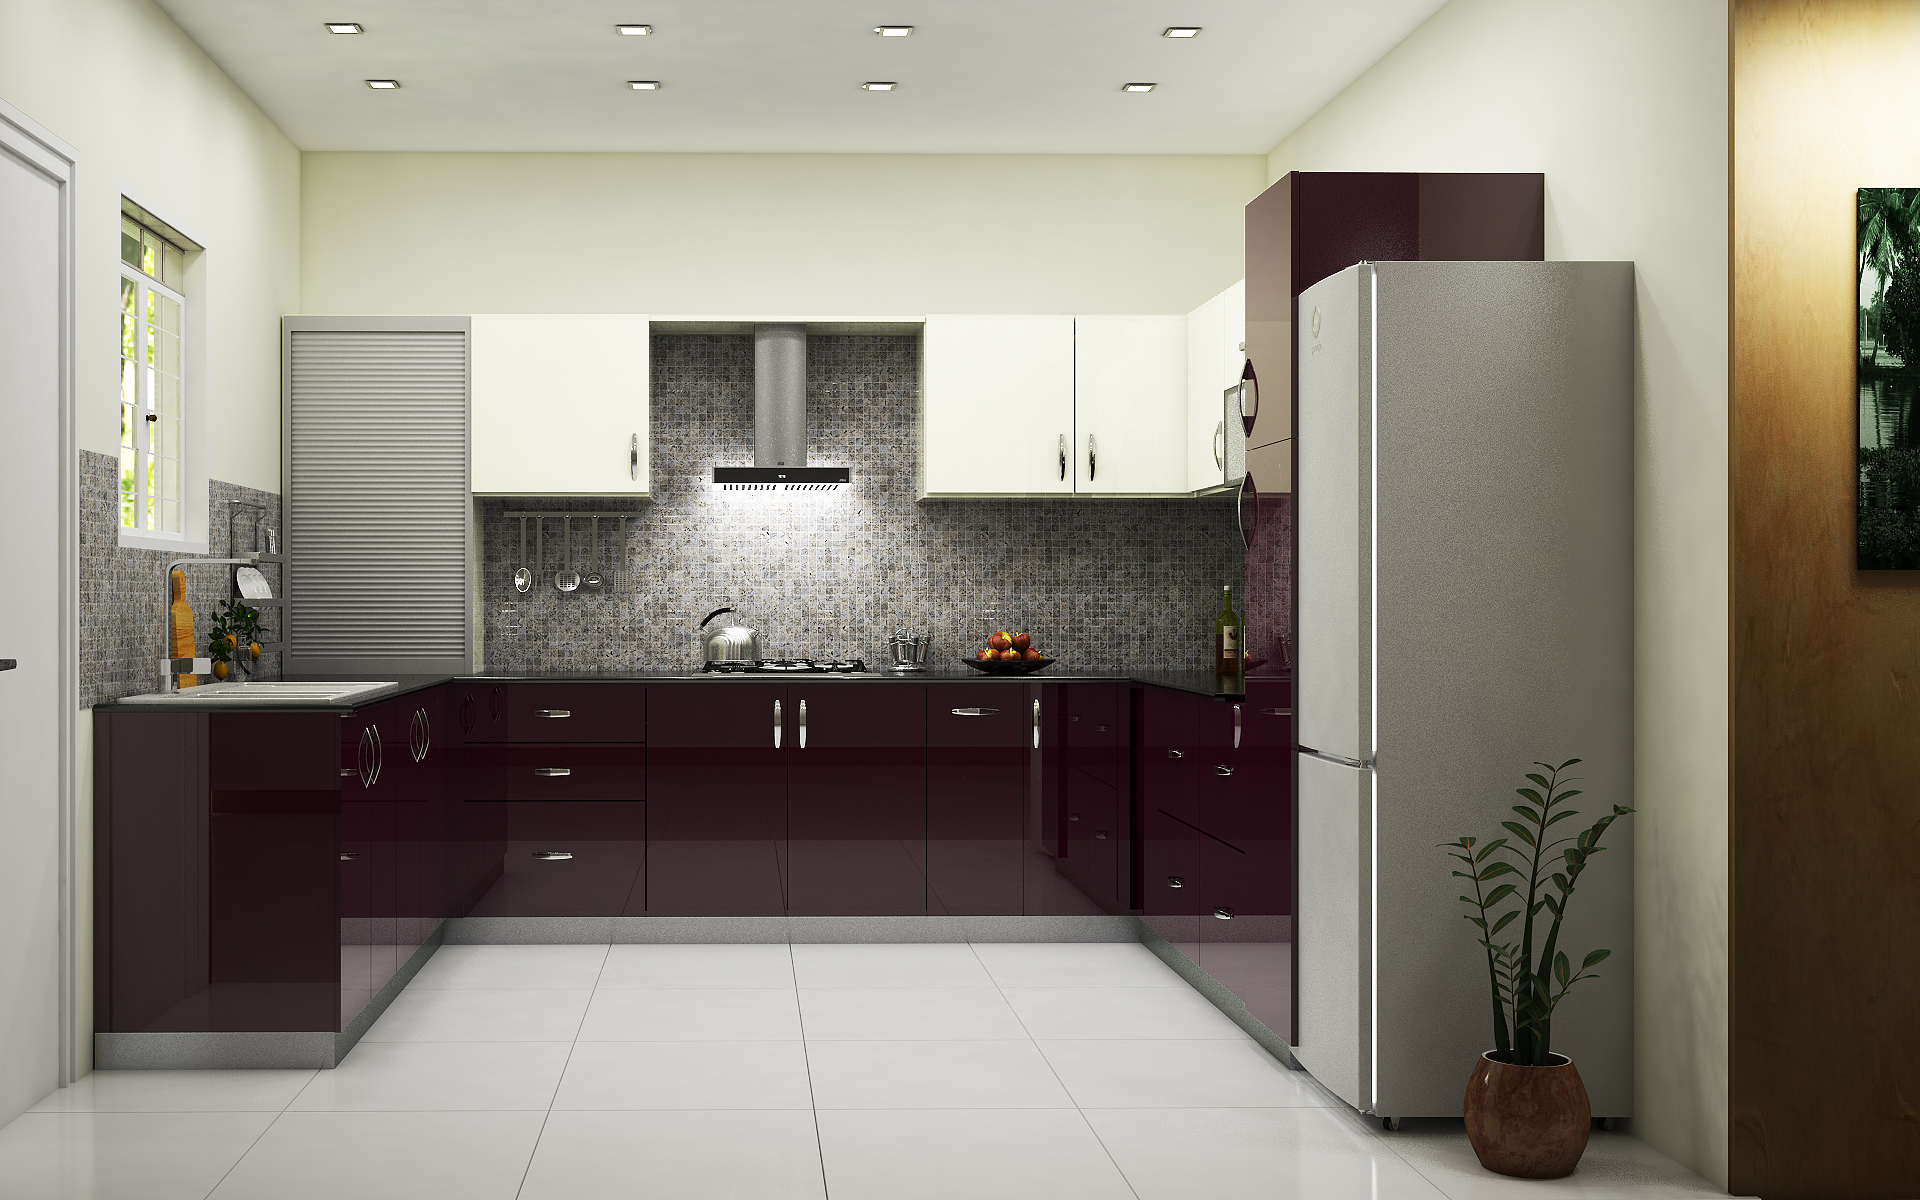 small kitchen design ideas in india for beautiful and designer kitchen select modular kitchen 437